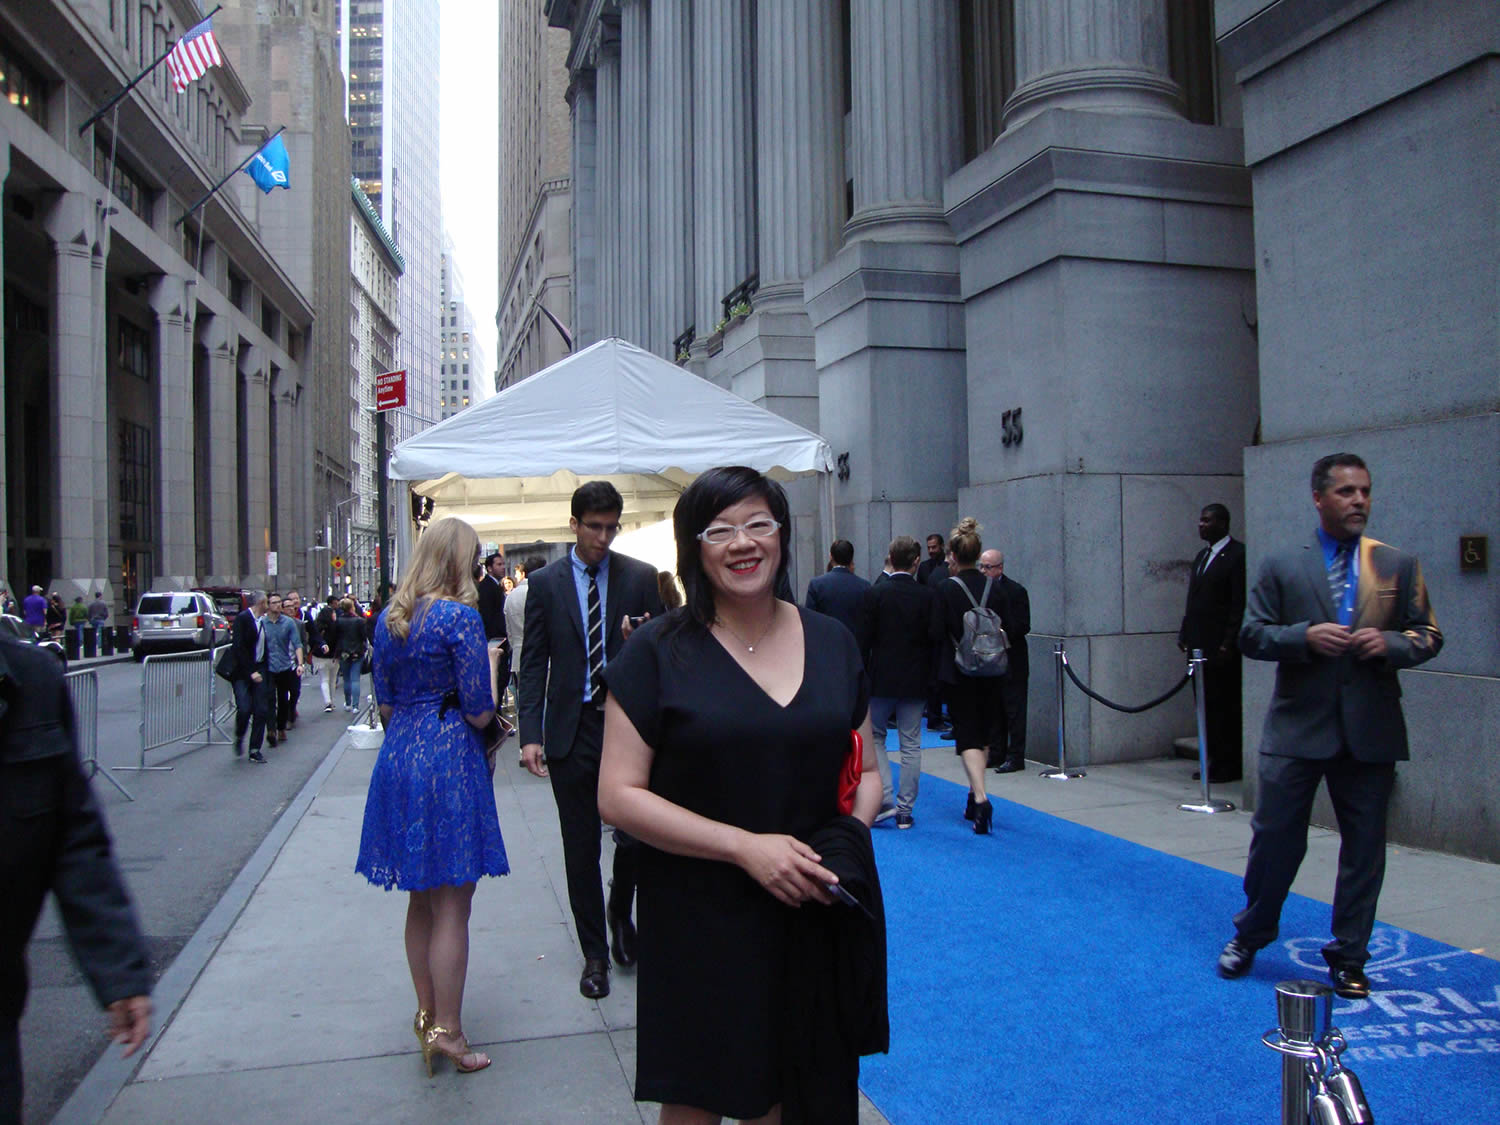 jenny eng at entrance of ciprani (wall street ) for the 19th annual webby awards